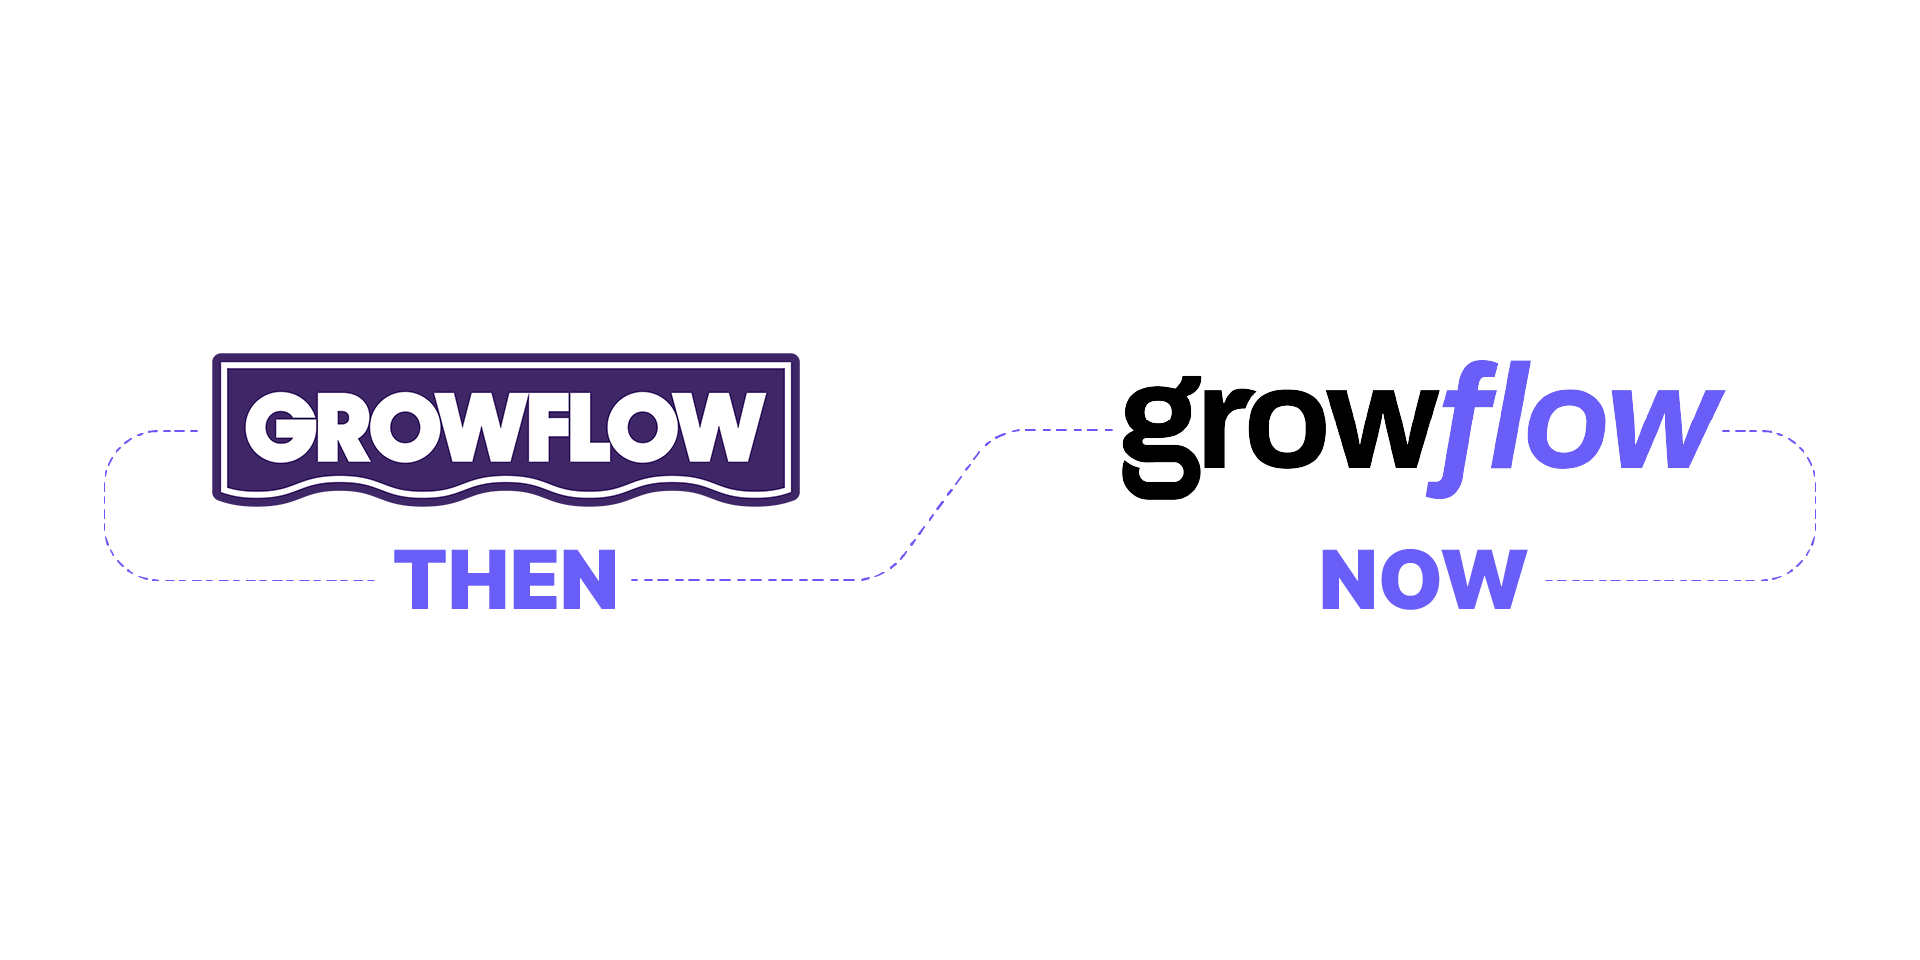 GrowFlow-Logo-Comparison-2-1